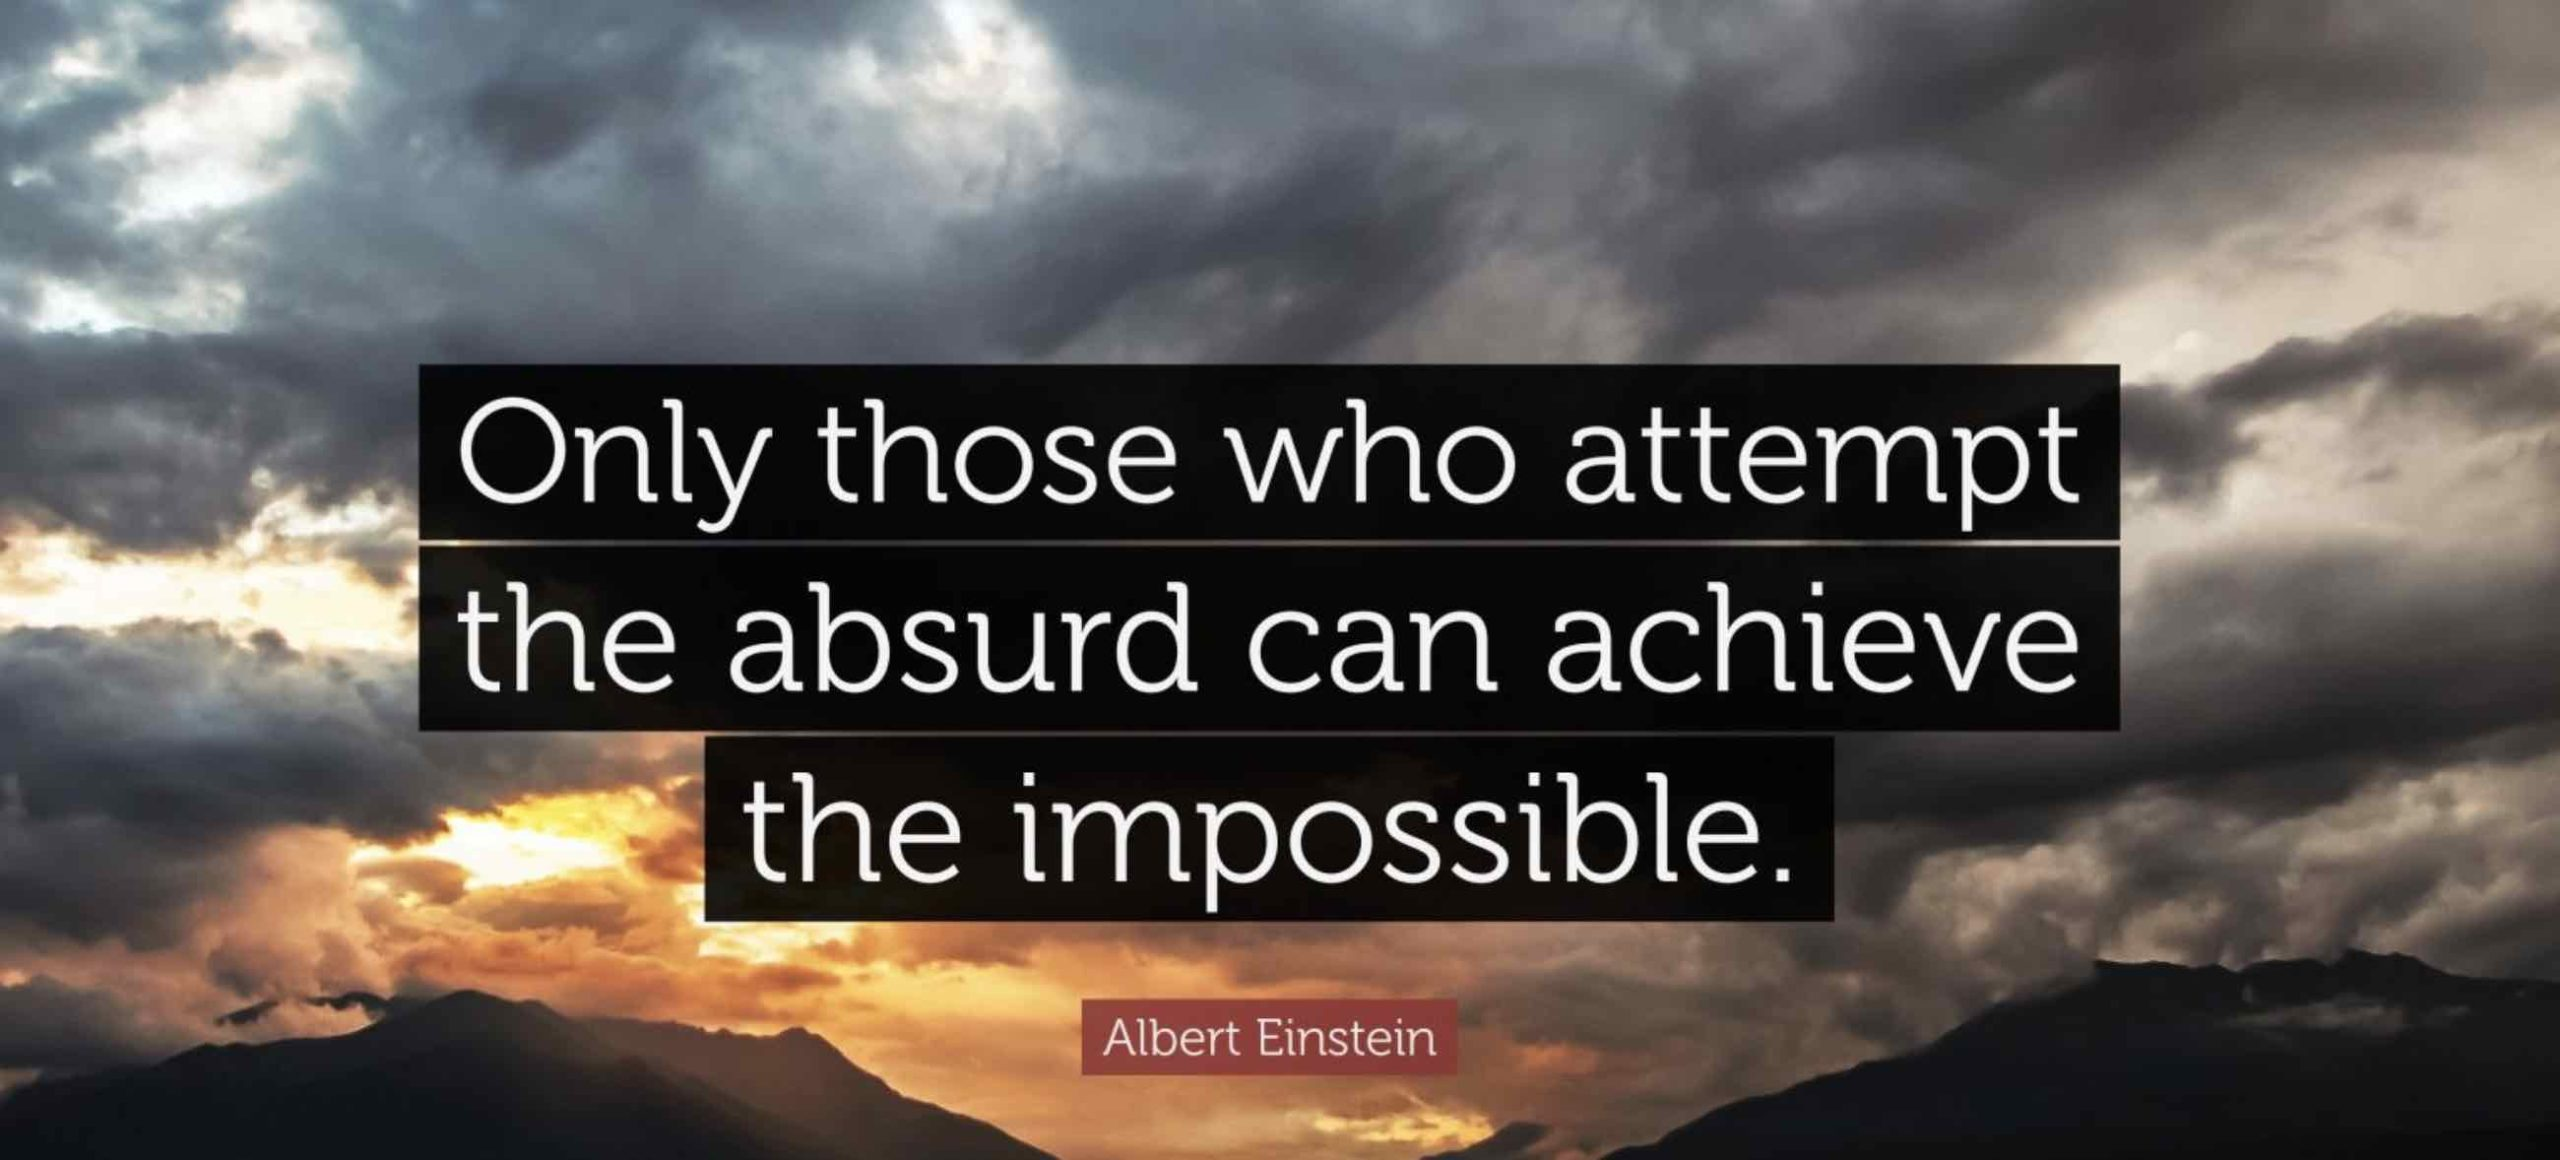 Only those who attempt the absurd can achieve the impossible